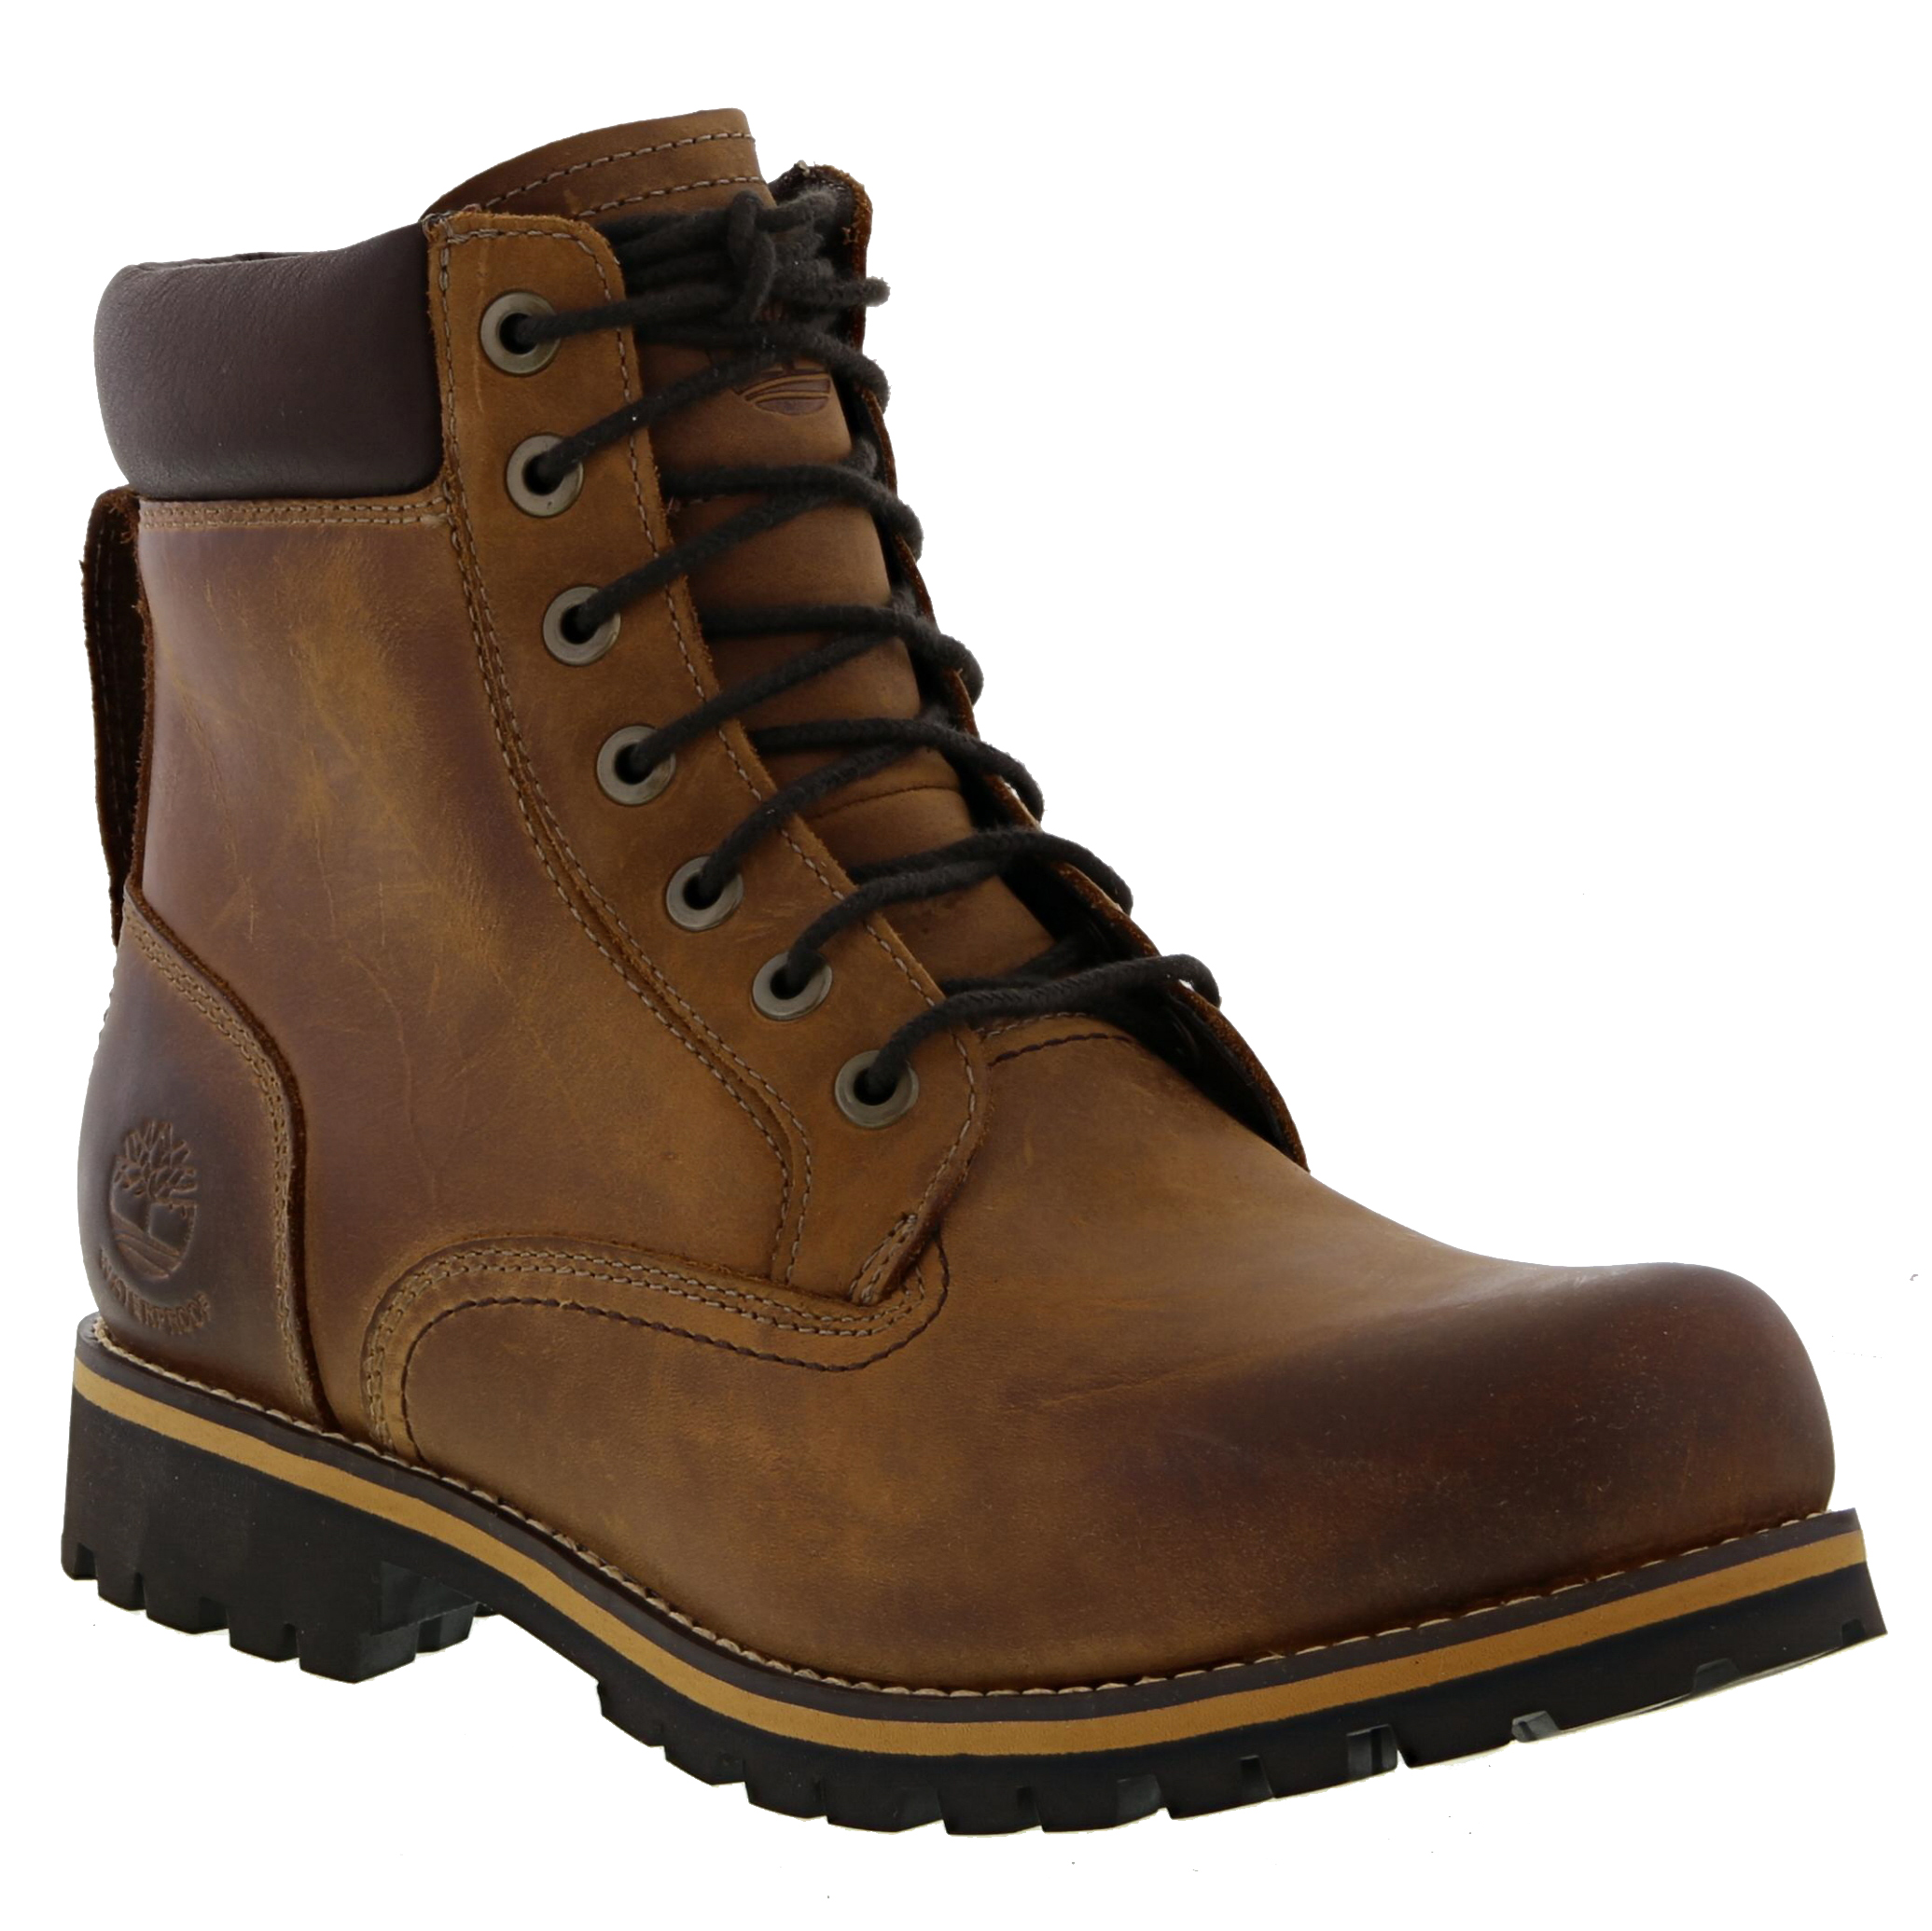 18baf62076346 Timberland Earth Keeper Rugged 6 Inch Mens Waterproof Boots Size UK ...